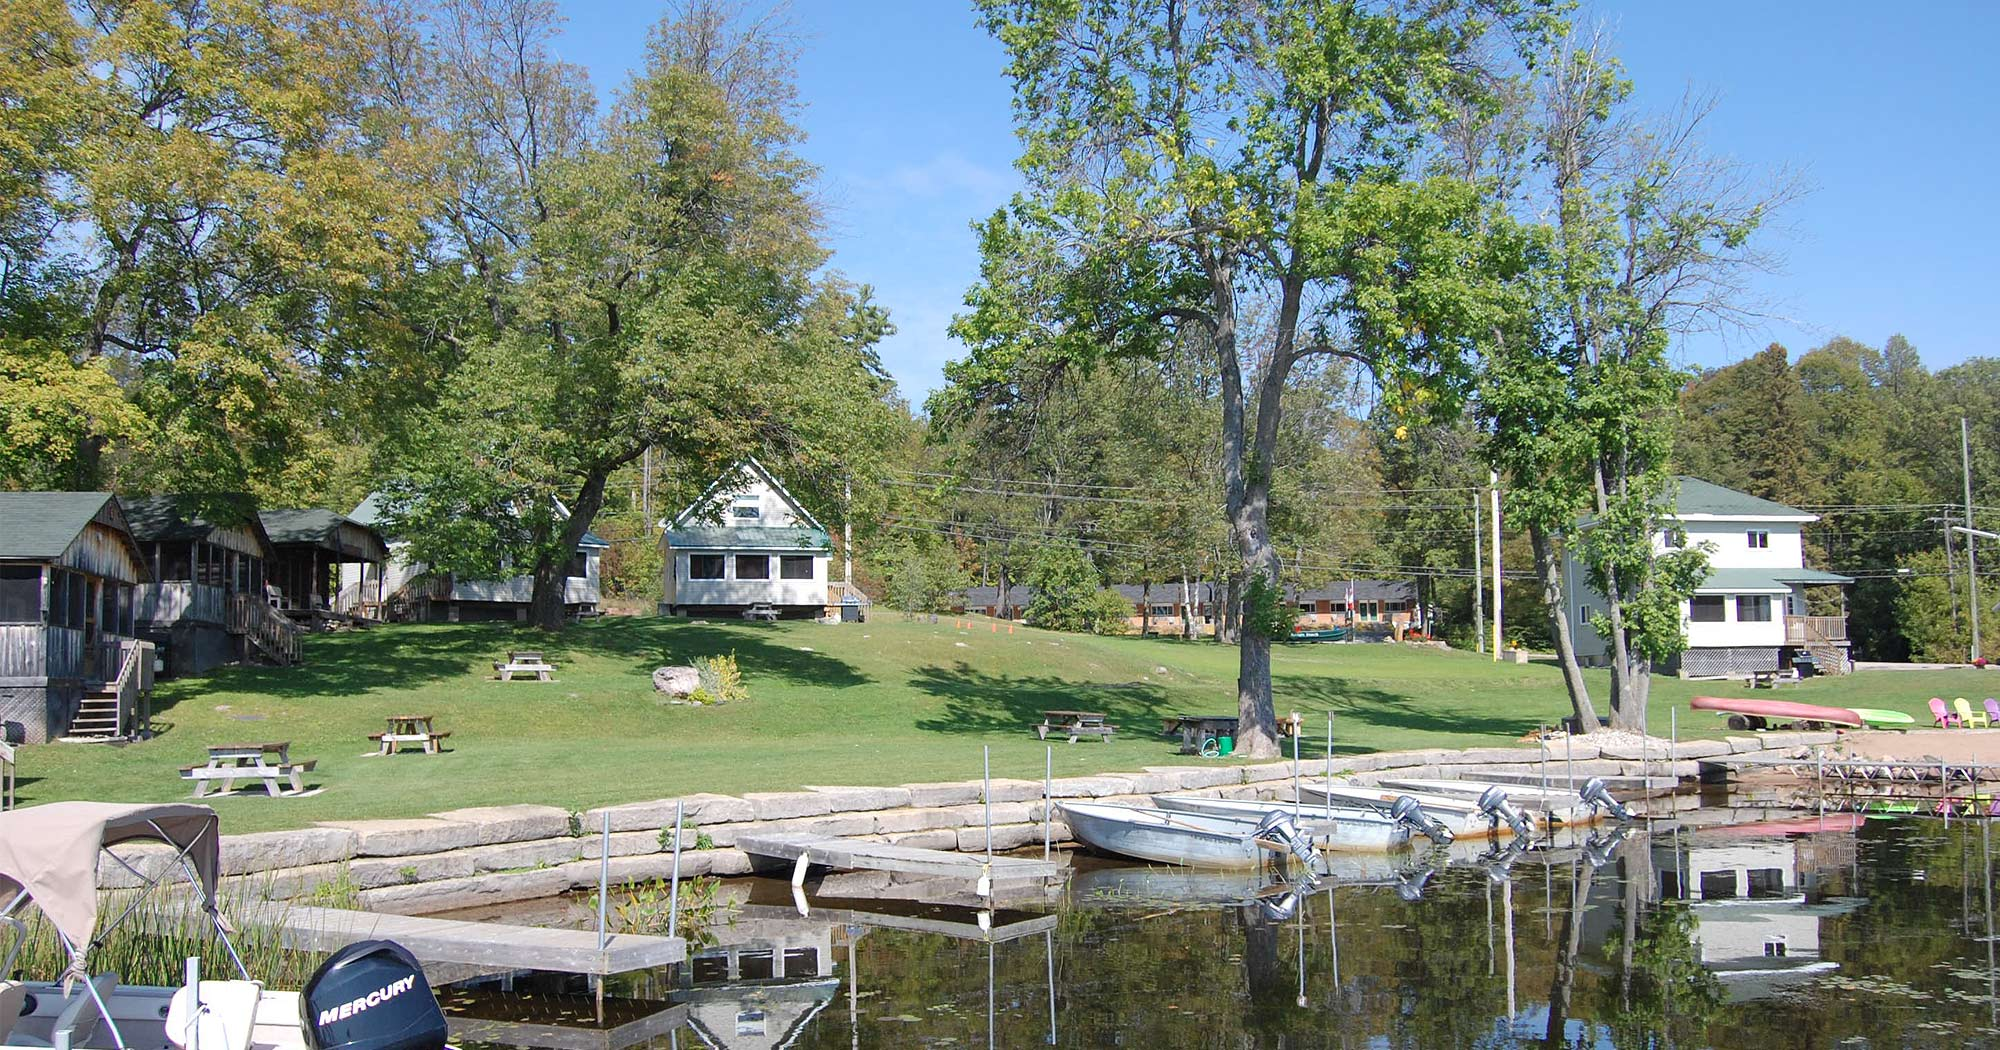 View of Jocko's Resort in summer, with fishing boats at the lake